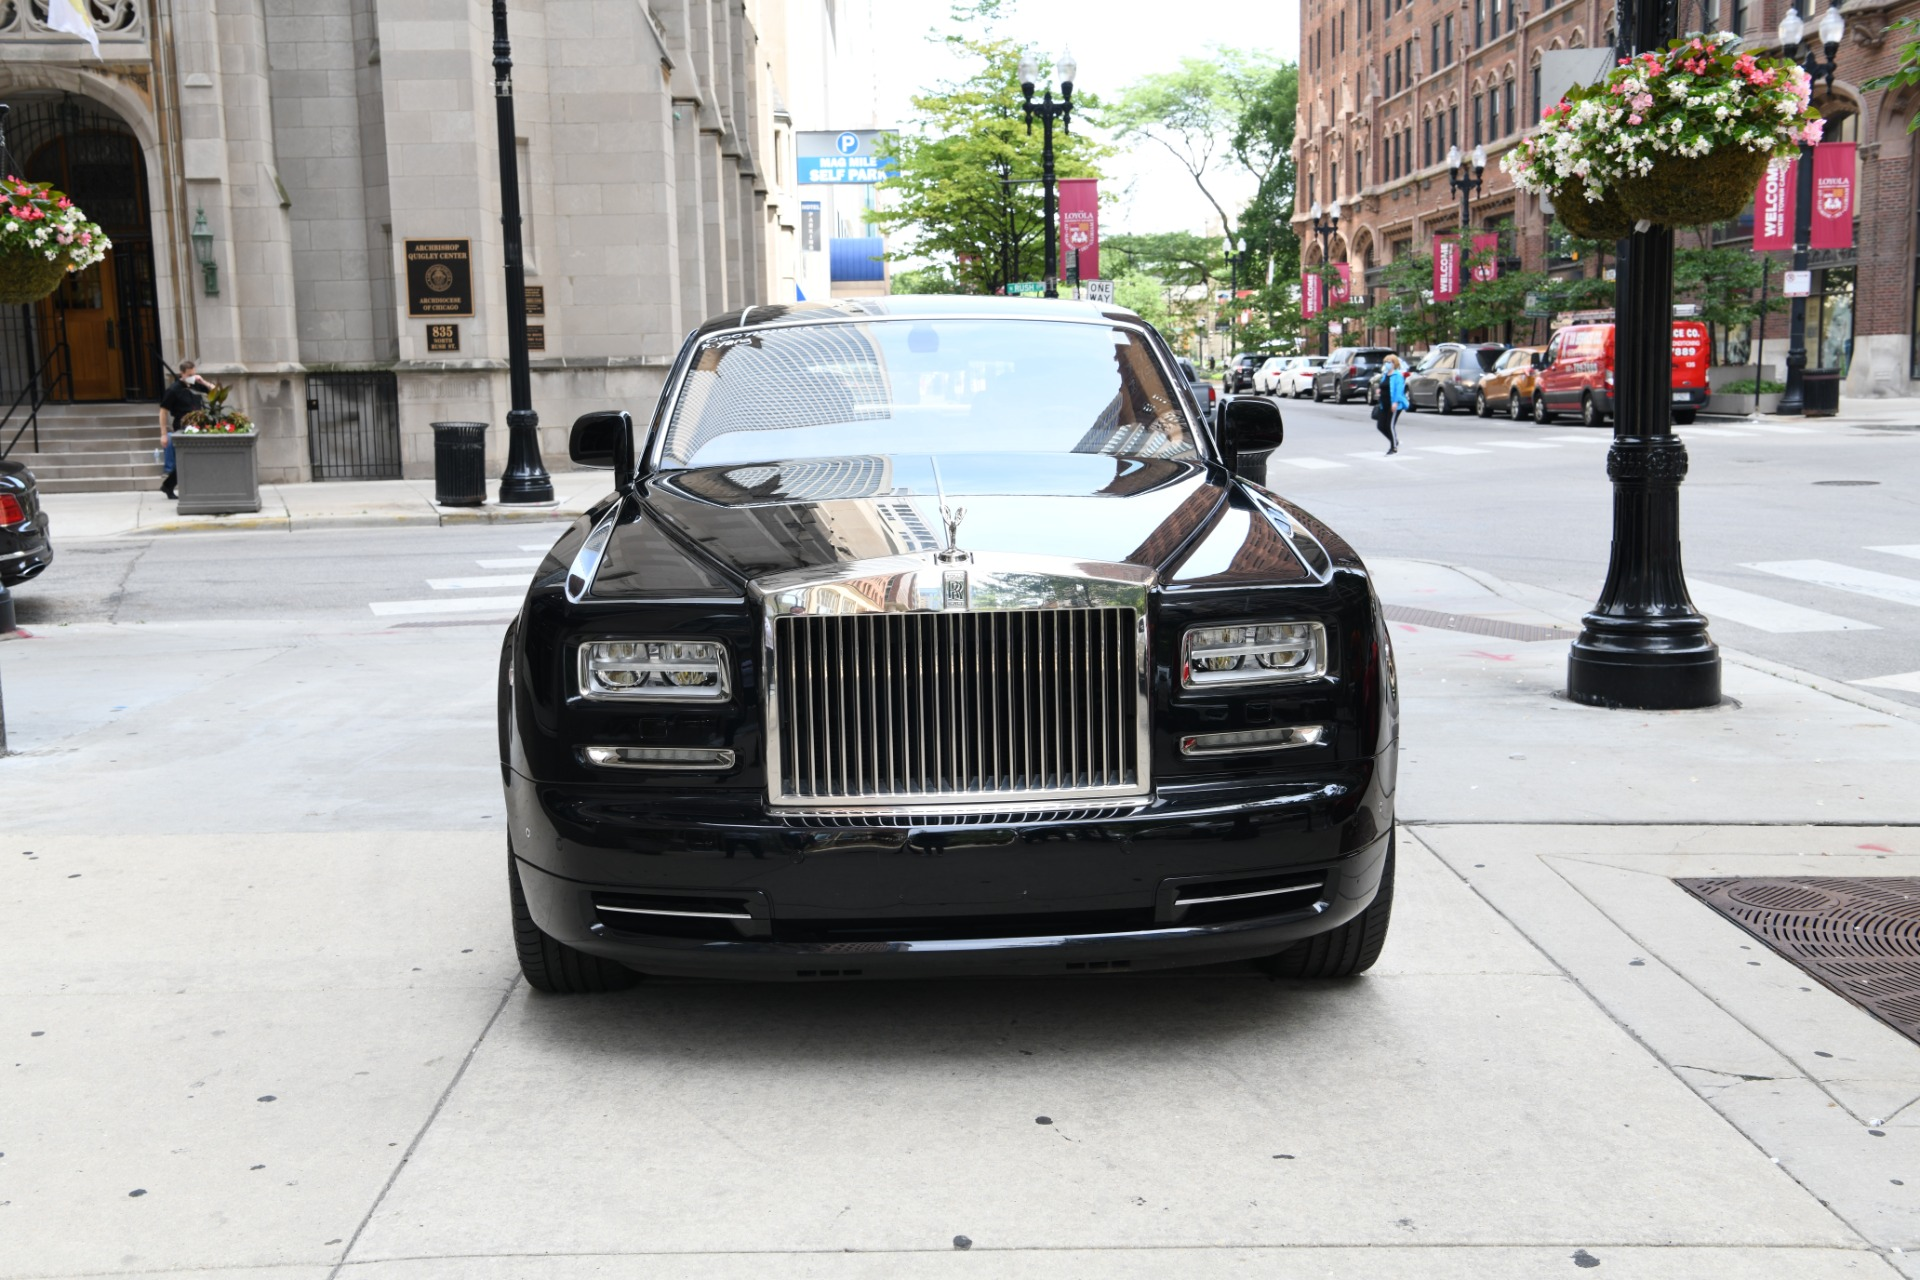 Used 2017 Rolls-Royce Phantom Extended Wheelbase EWB | Chicago, IL